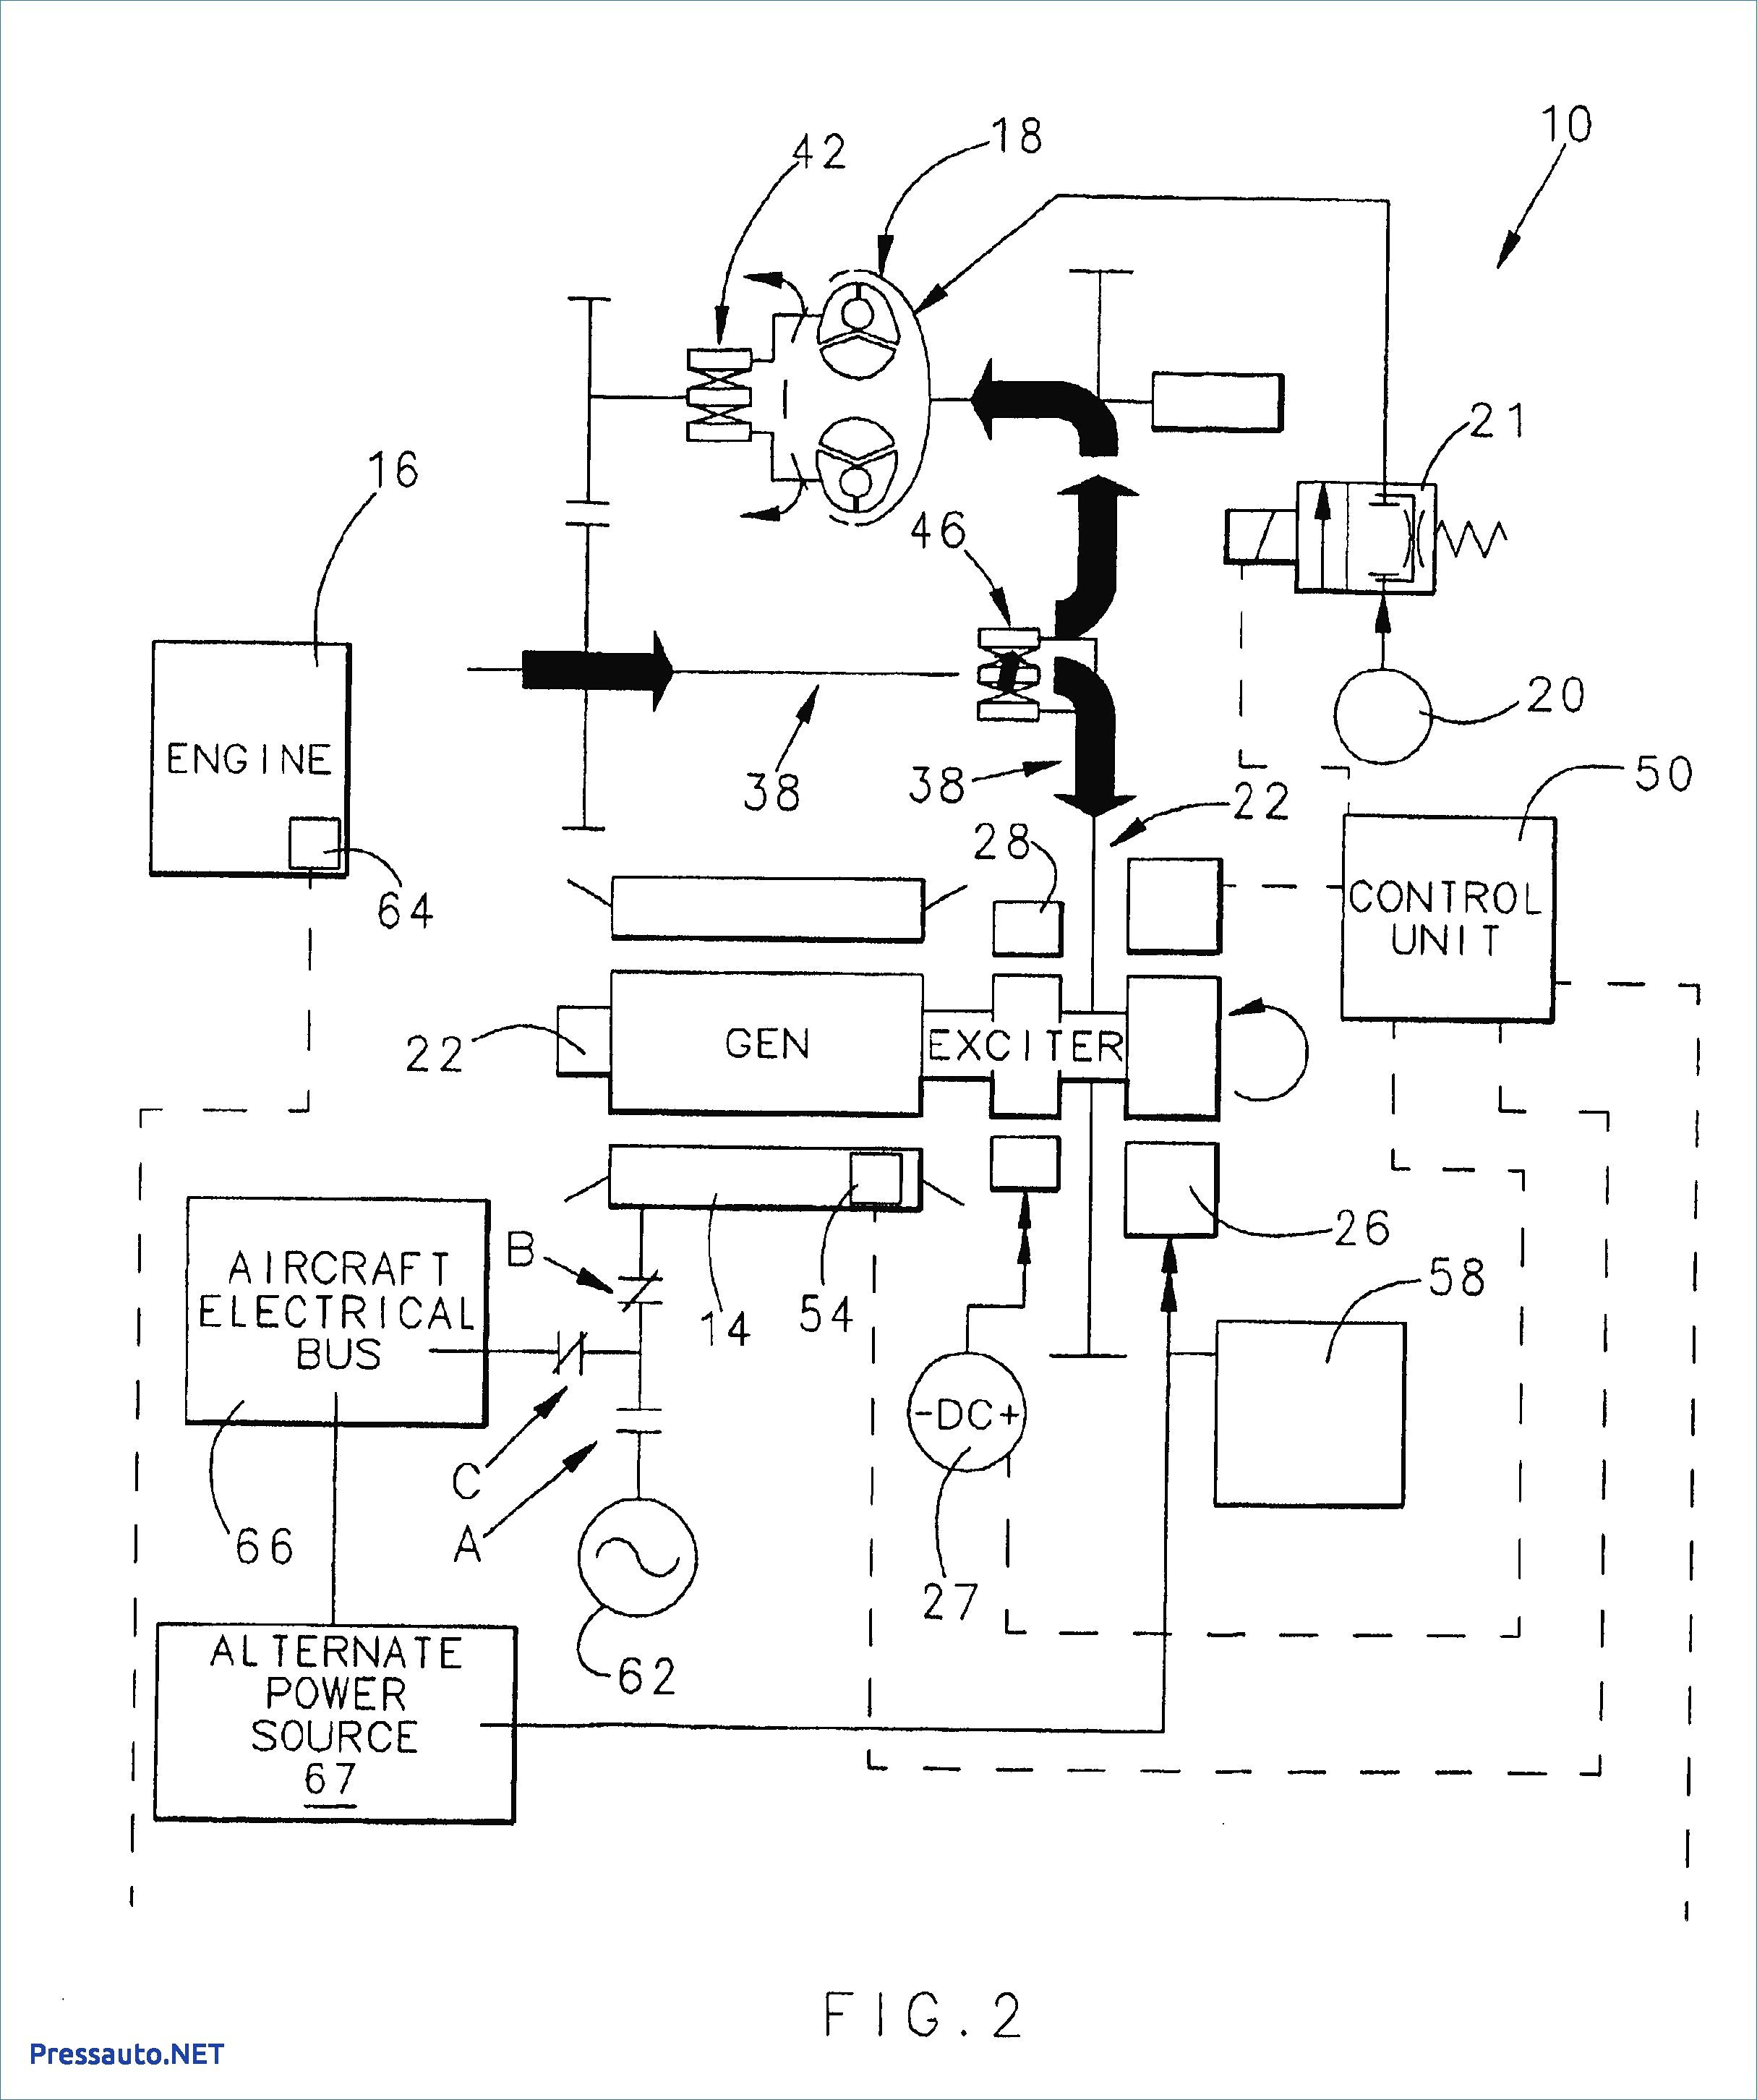 Honda Del Sol Engine Diagram My Wiring Diagrams 93 Wire Instructions Cr V Drivetrain Schematic